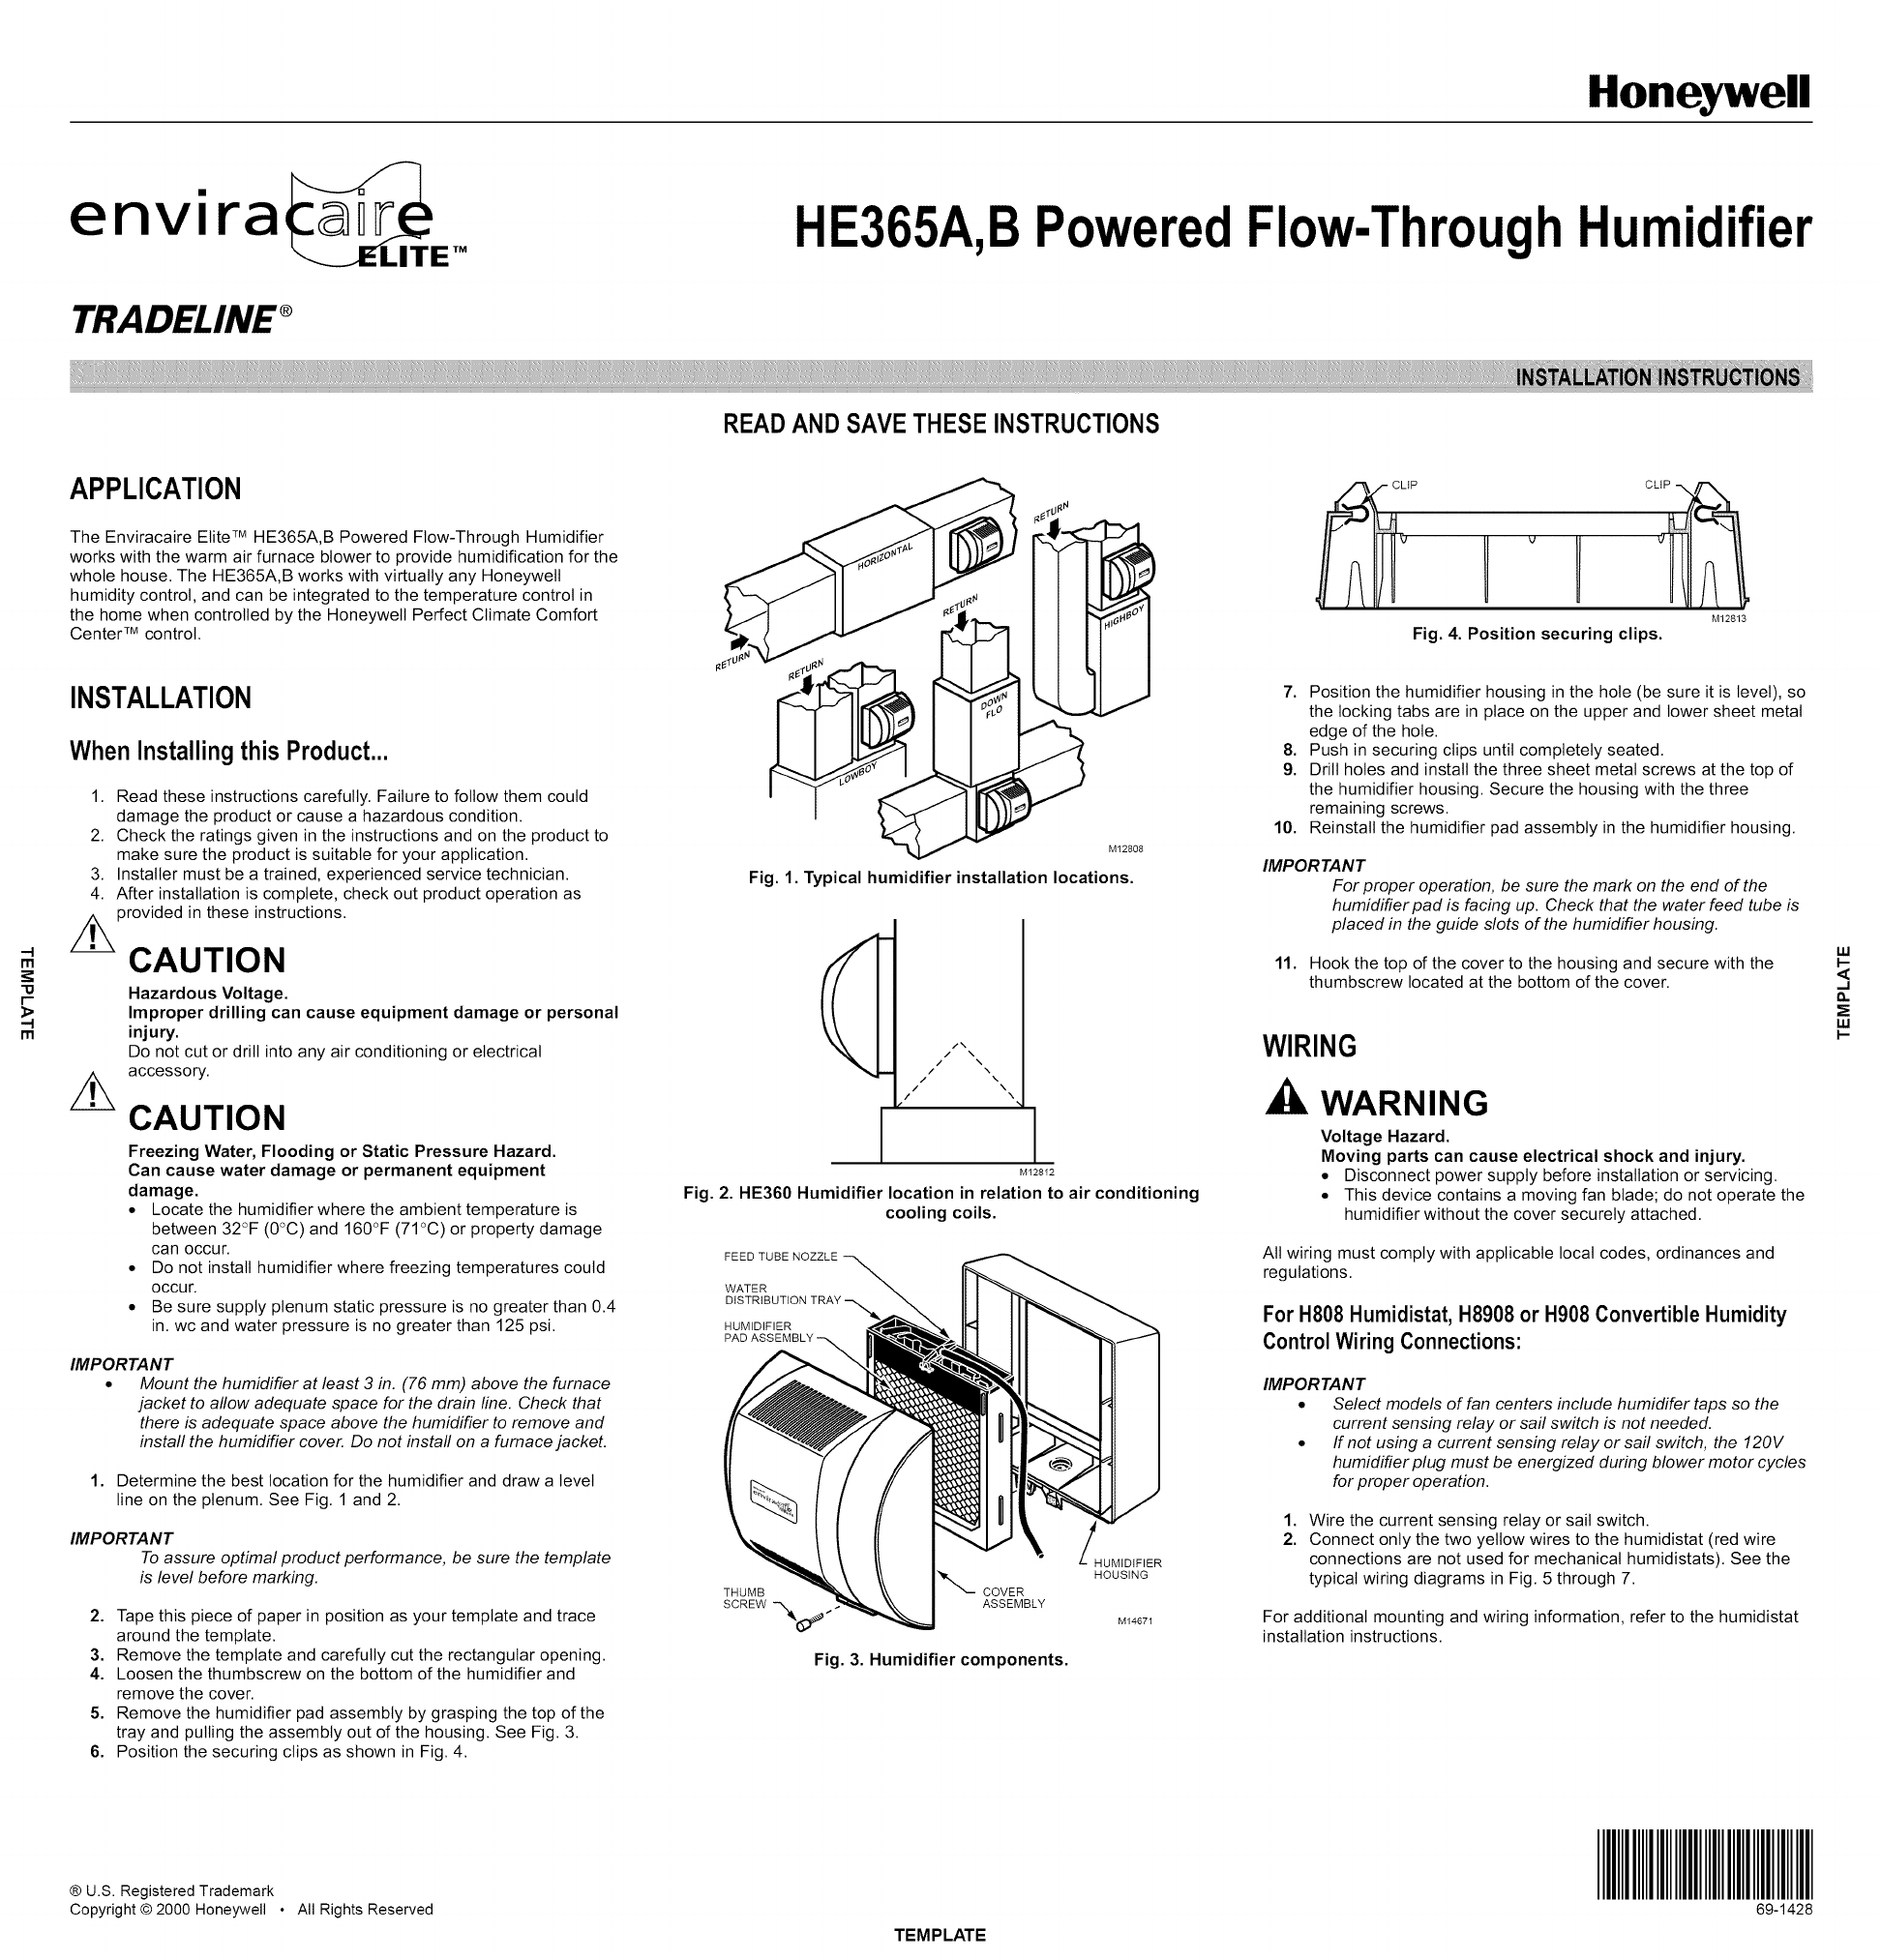 Honeywell He365b User Manual Humidifier Manuals And Guides L1002583 Red Jacket Wiring Diagram Owners Installation